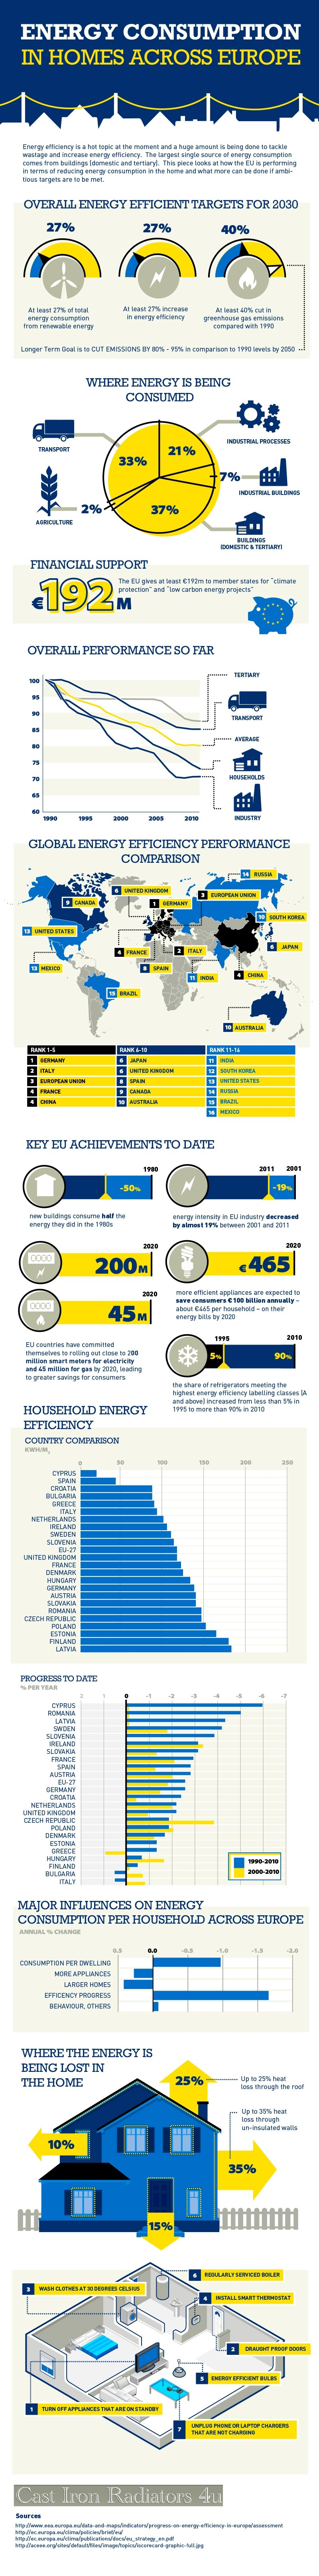 energy-consumption-homes-europe